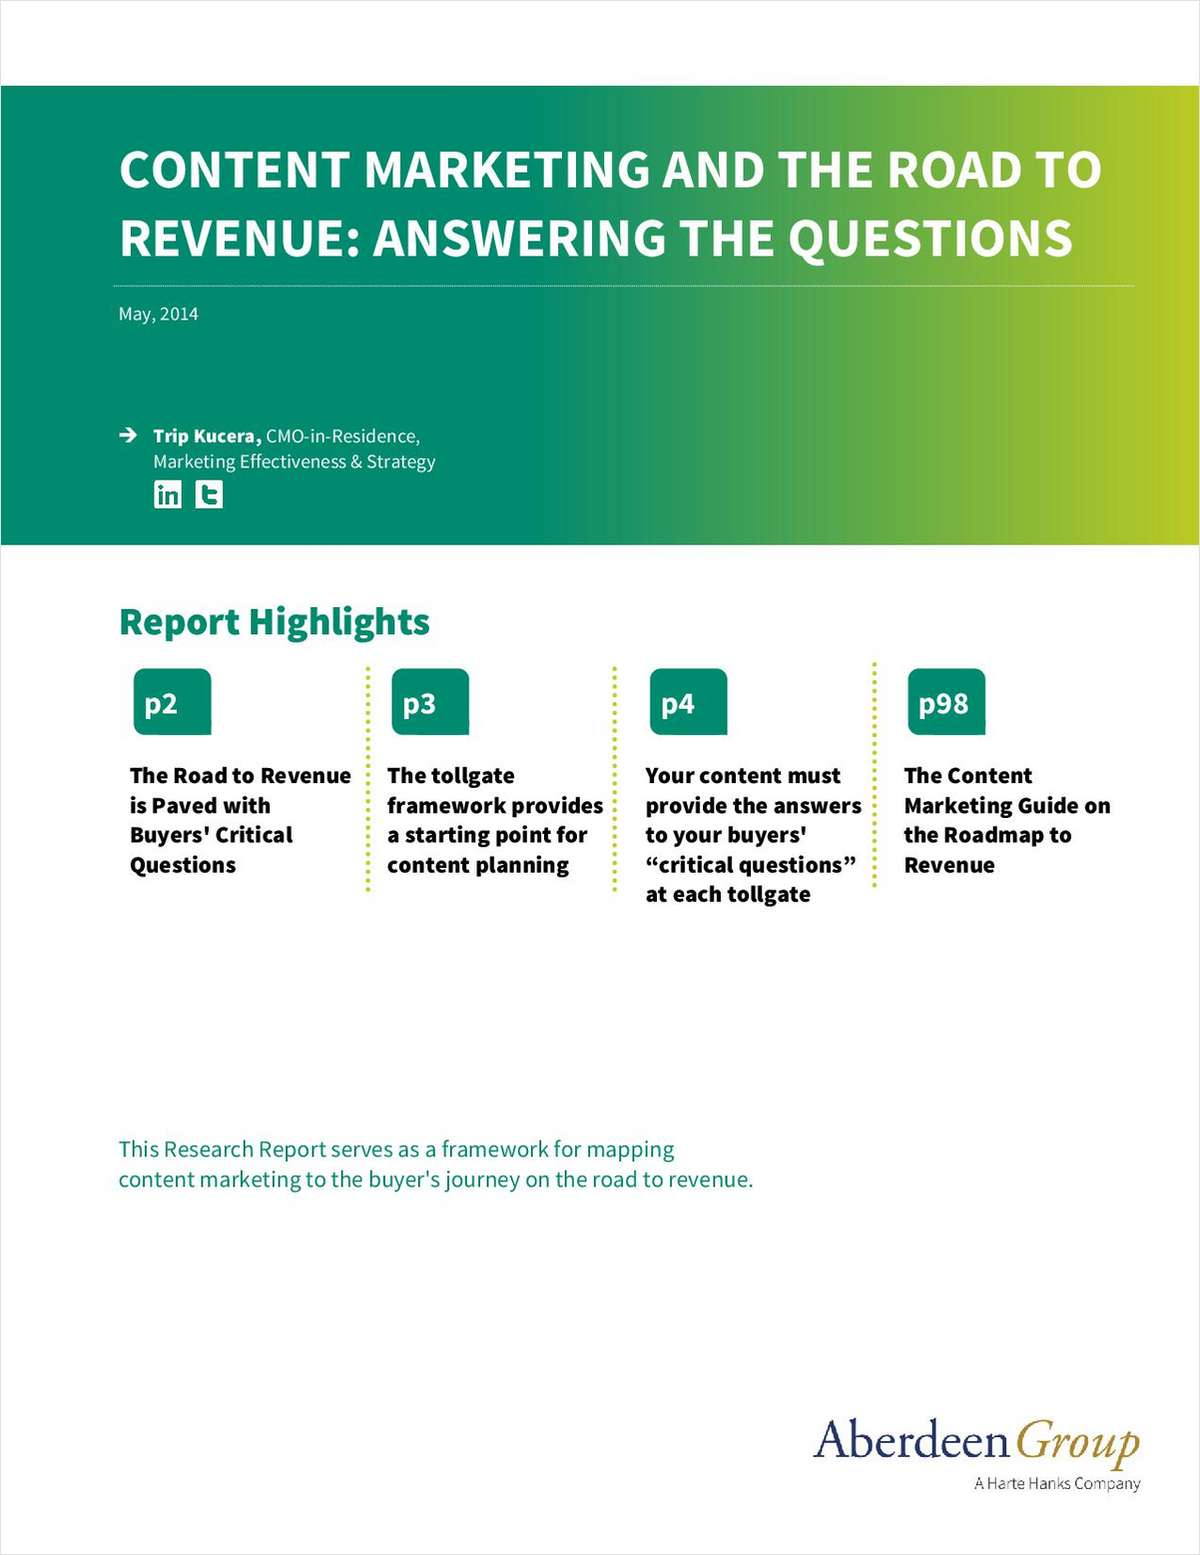 Content Marketing and the Road to Revenue: Answering the Questions